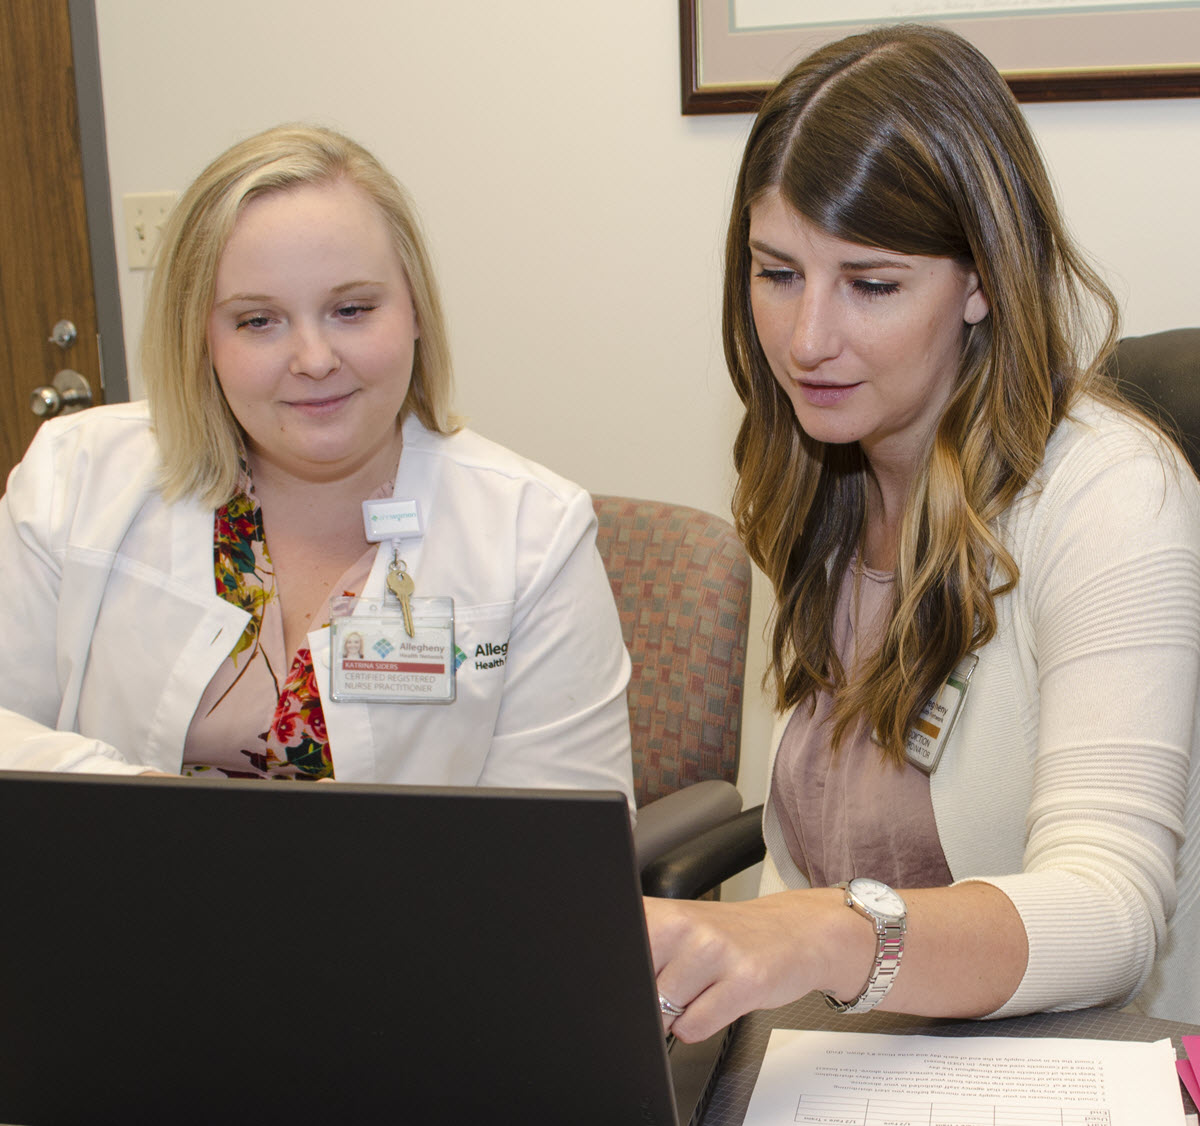 Katrina Siders and Ashley Schultz sharing a computer screen as part of their work with the Perinatal Hope Program